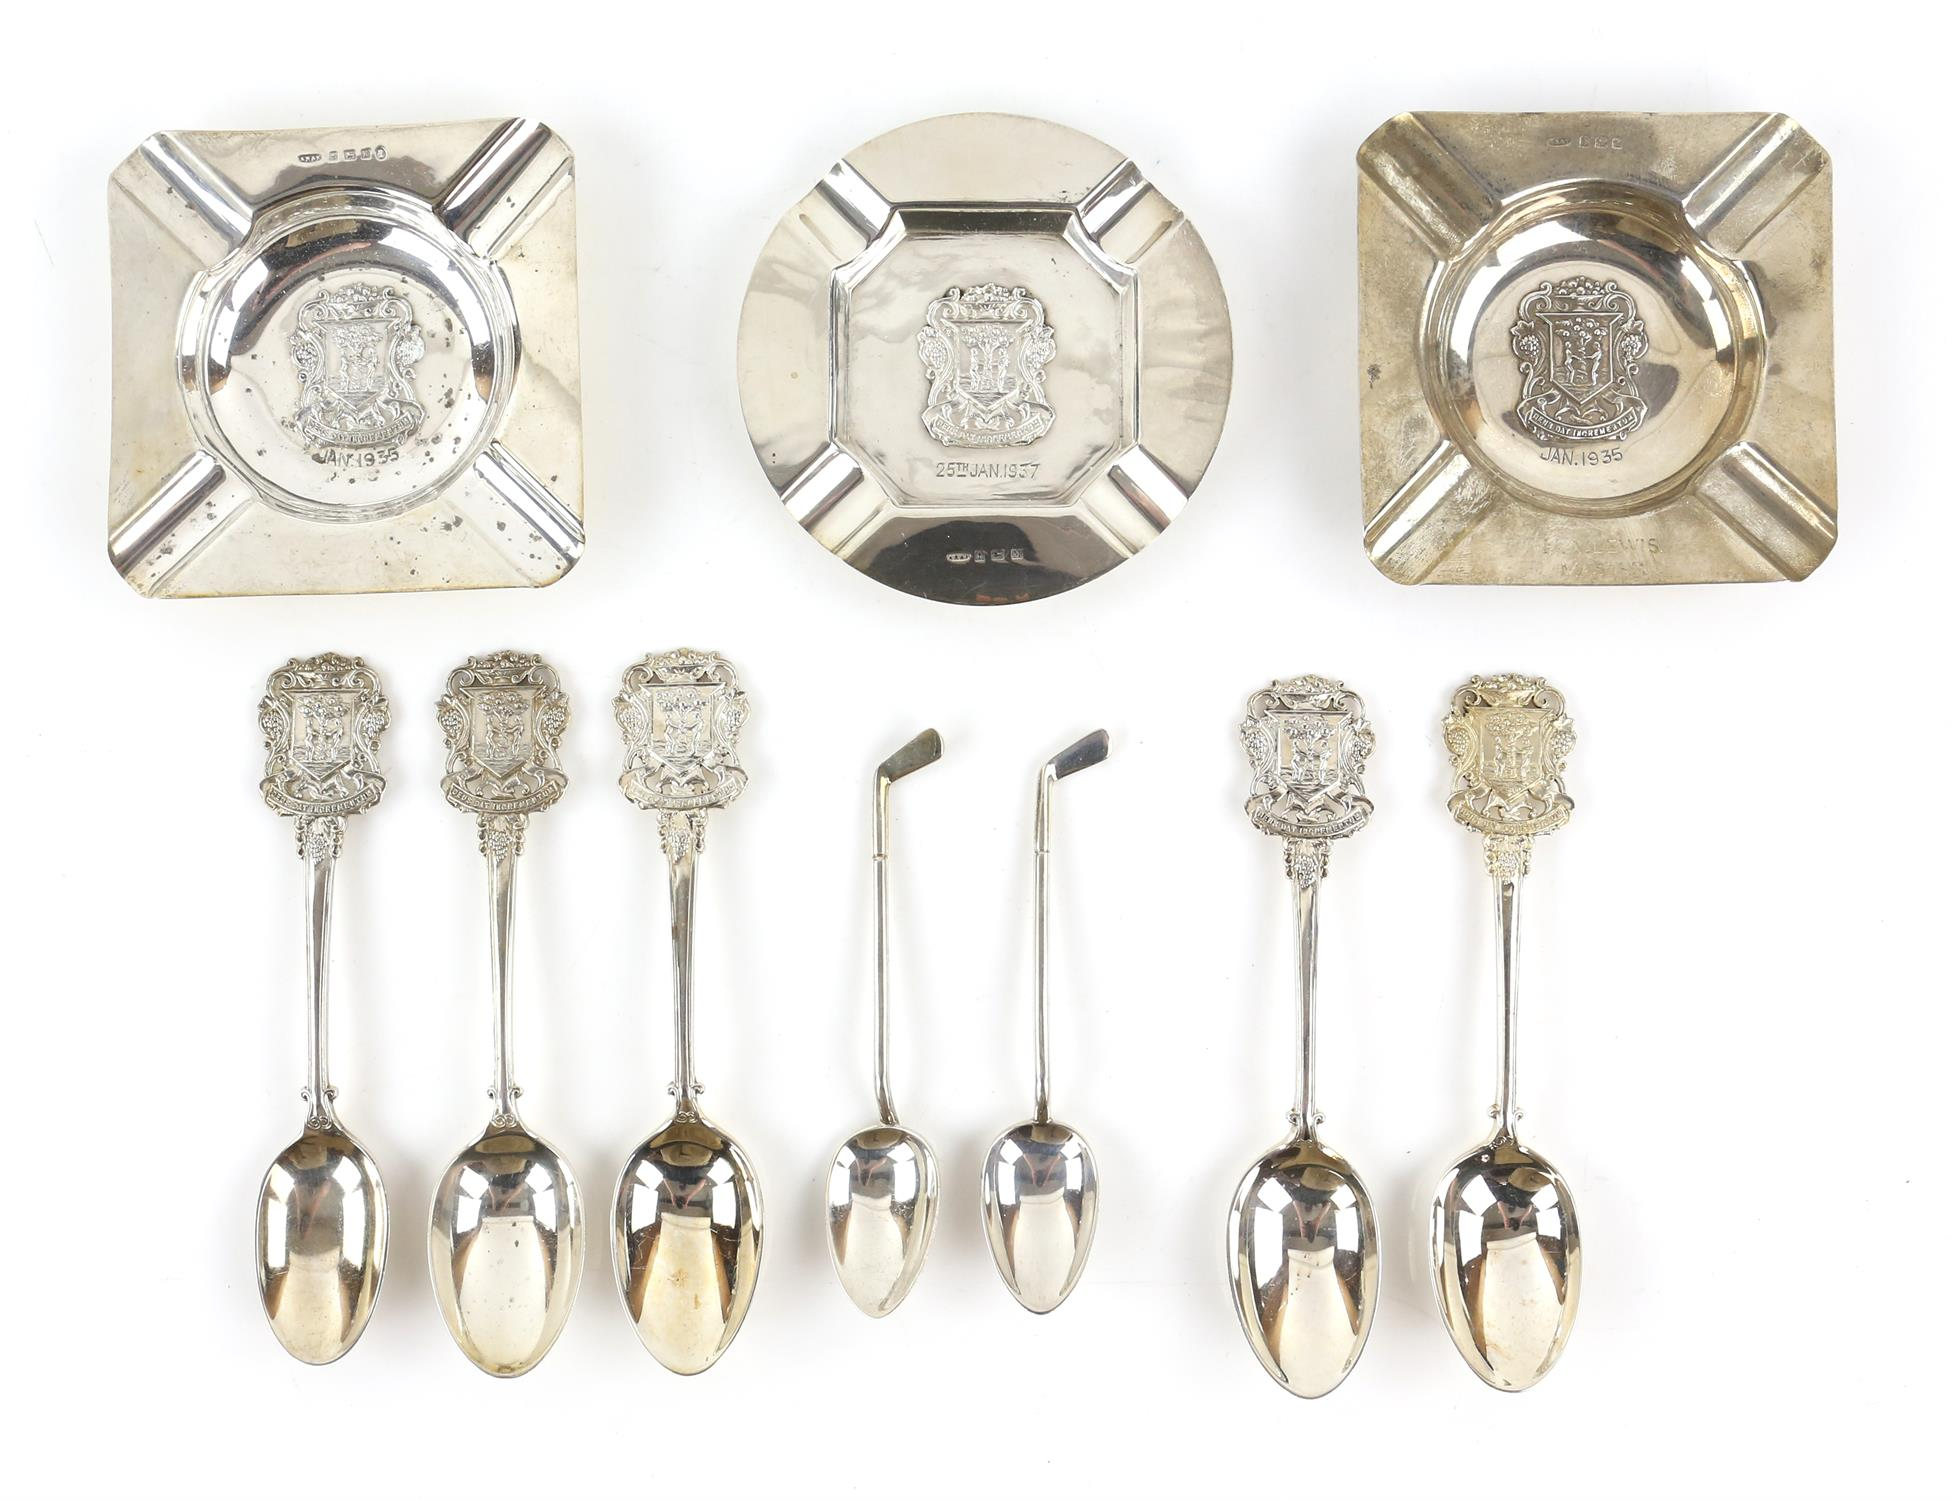 The Worshipful Company of Fruiterers, 5 spoons and 3 ash trays, together with two golfing tea